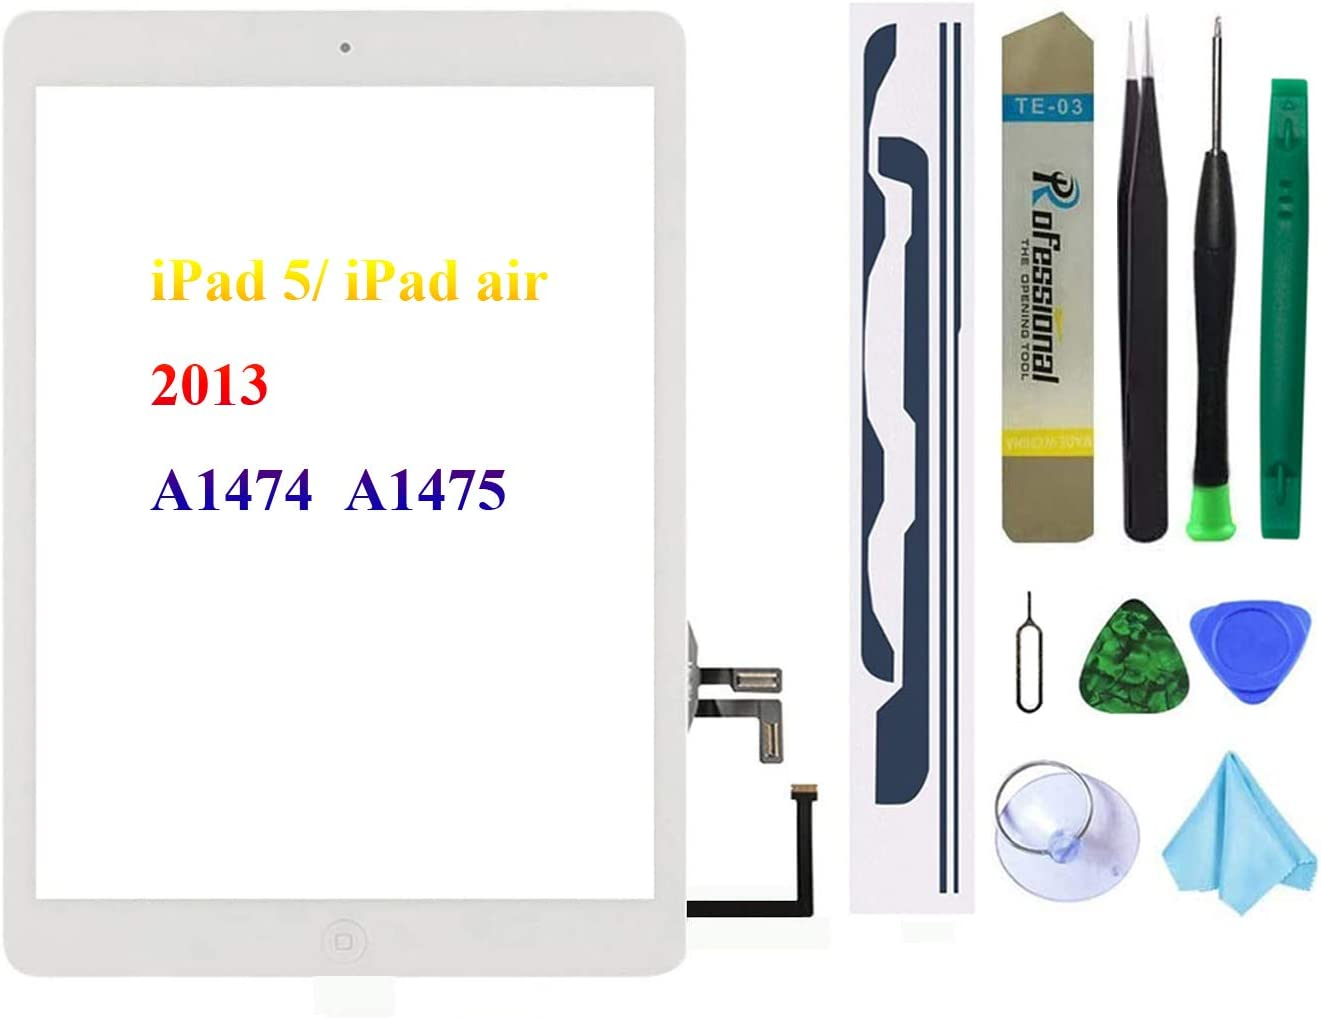 White Touch Screen Replacement for iPad 5/iPad air 2013 9.7 inch, A1474 A1475 A1476 Digitizer Glass Assembly with Home Button + Pre-Installed Adhesive + Tool kit